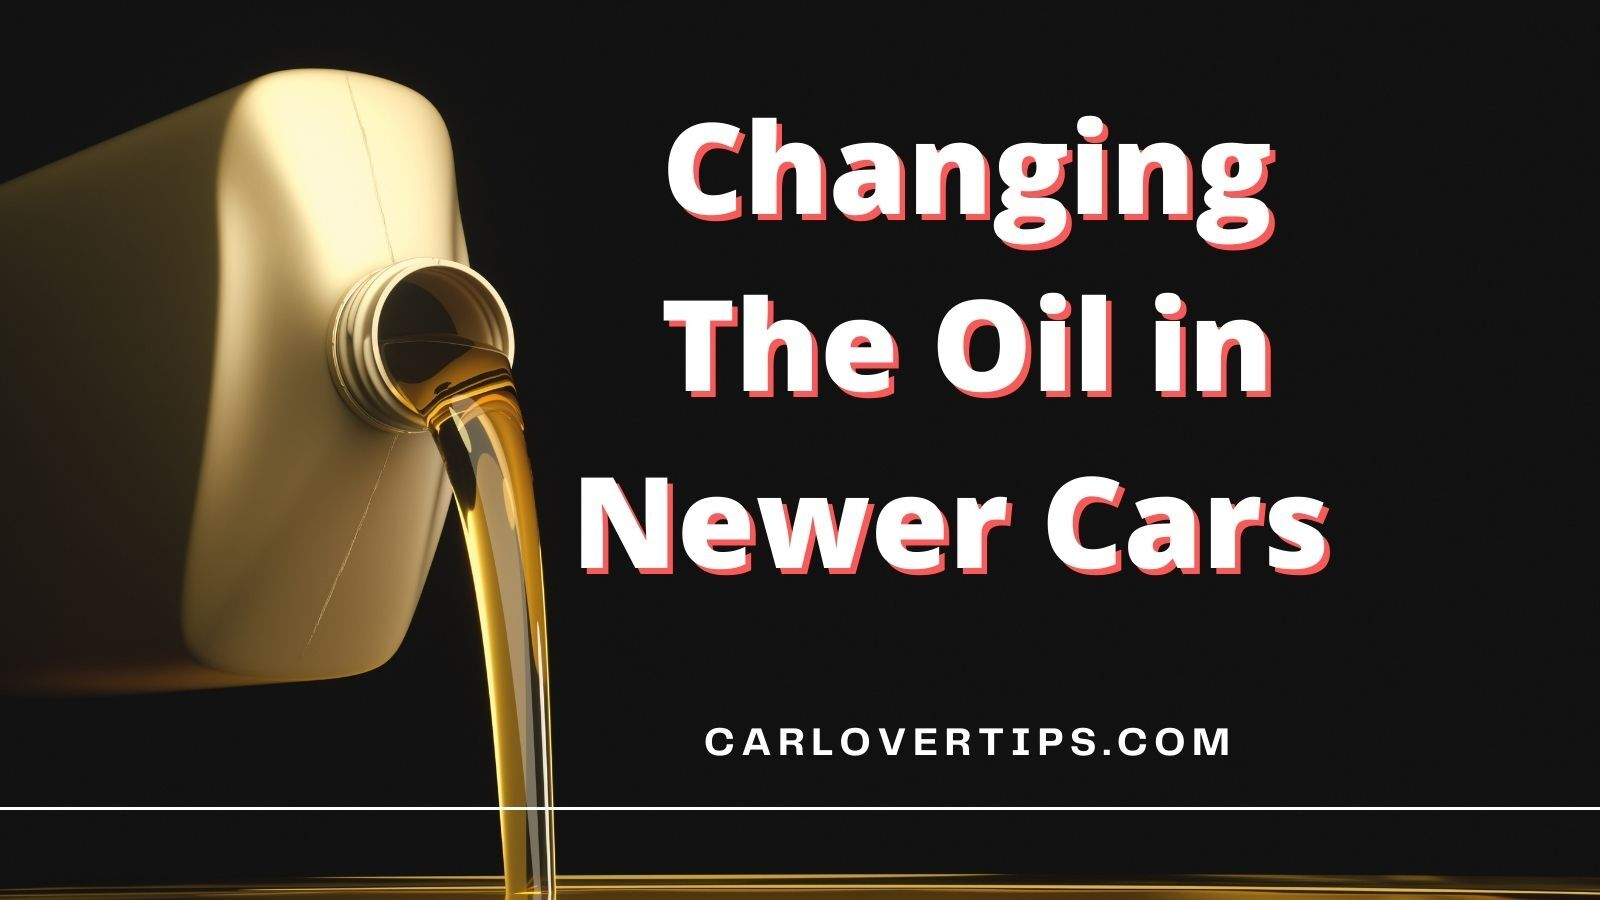 Changing The Oil in Newer Cars